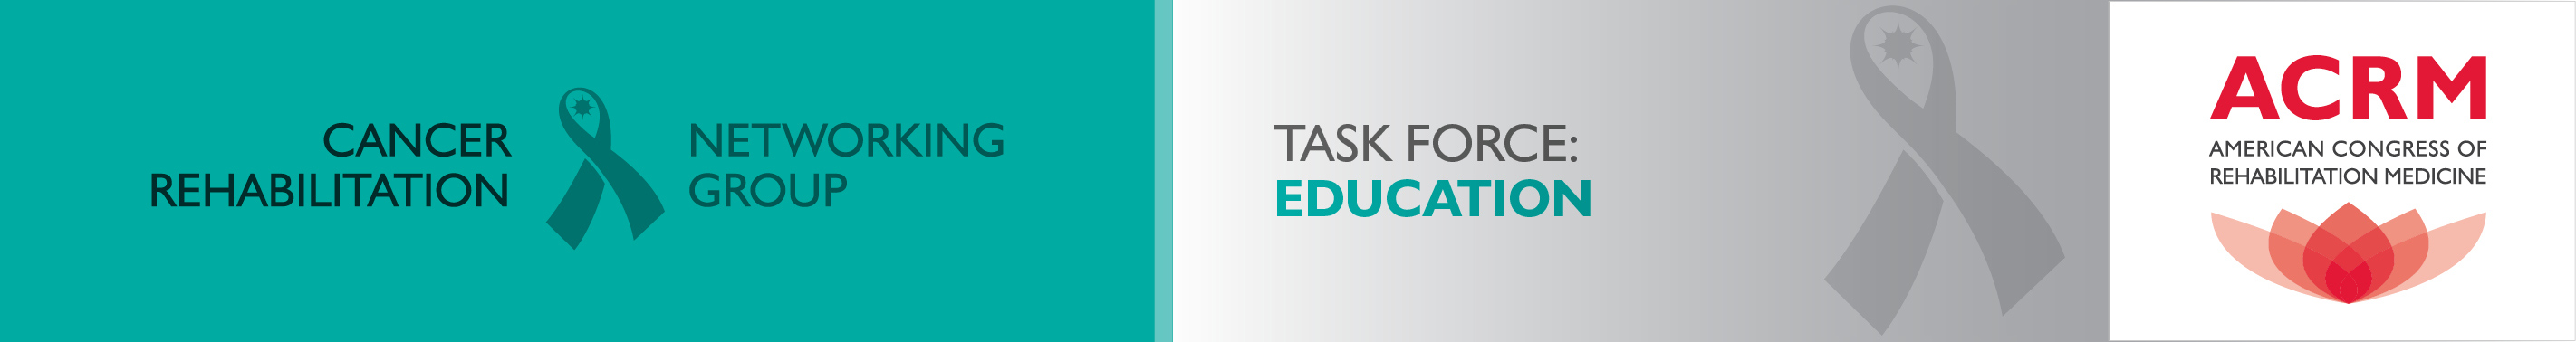 ACRM: Cancer Networking Group Education Task Force